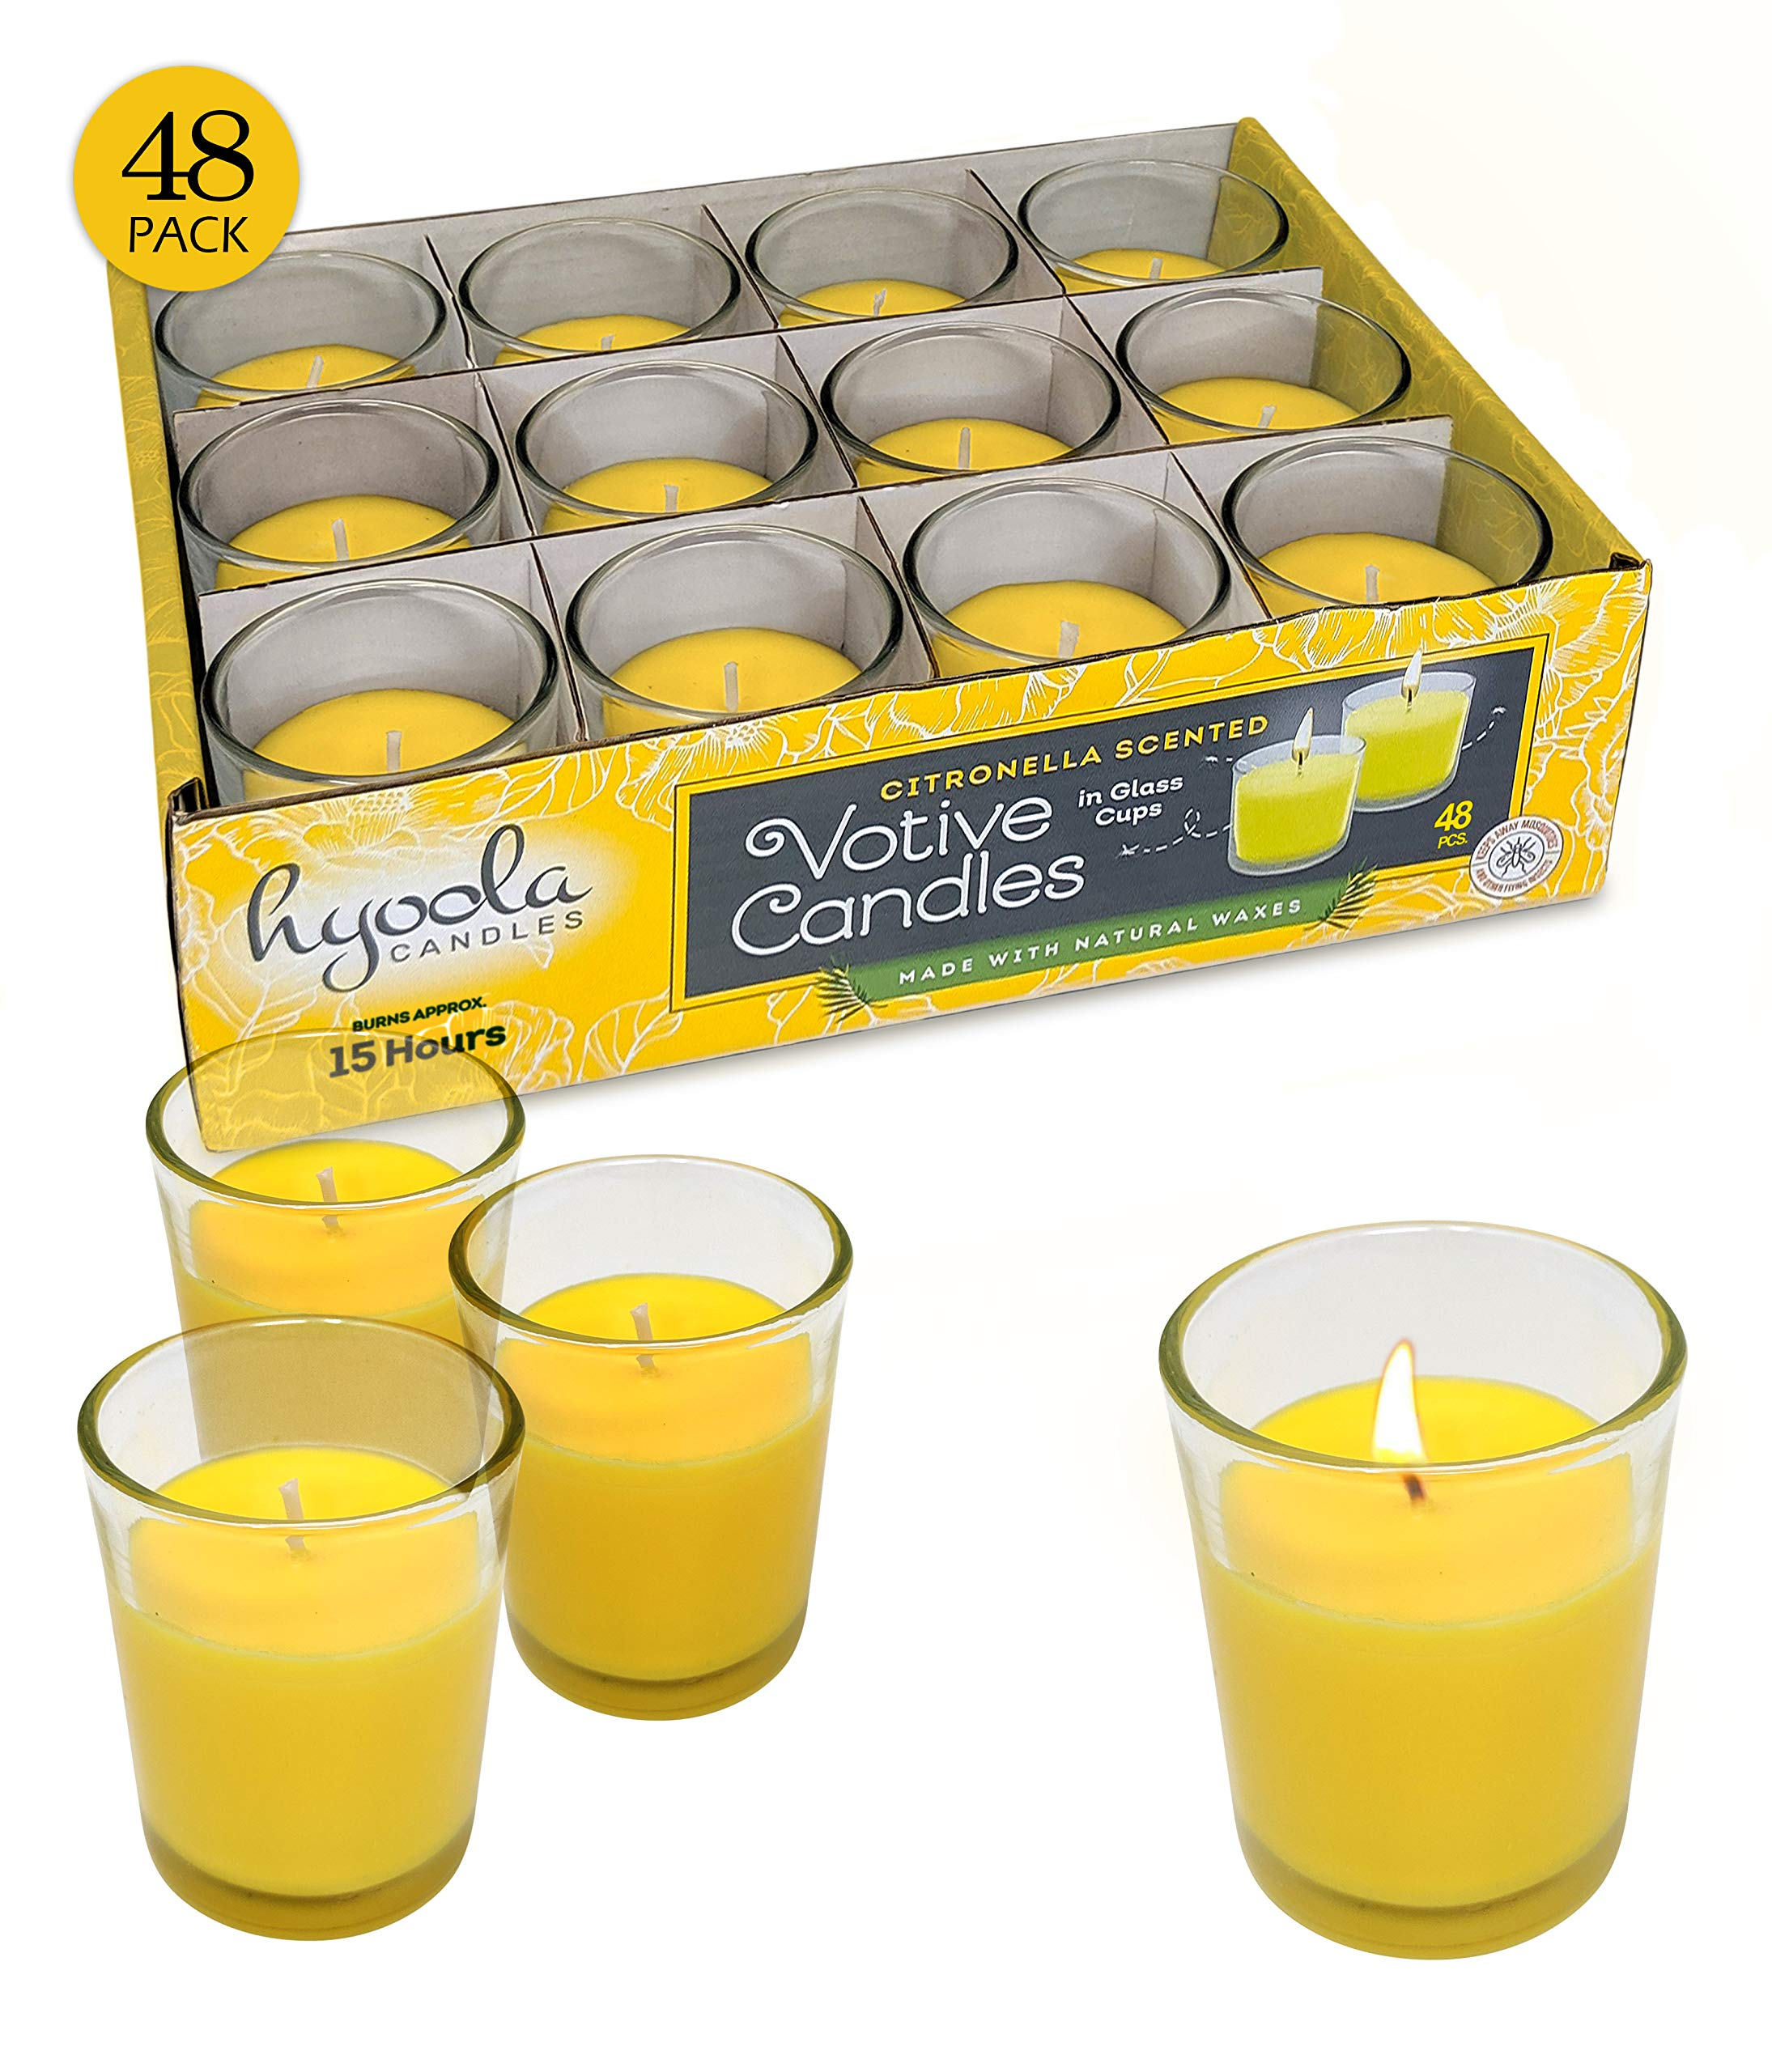 Hyoola Citronella Candle Votives in Glass Cup - 48 Pack - Indoor and Outdoor Decorative and Mosquito, Insect and Bug Repellent Candle - Natural Fresh Scent - 15 Hour Burn Time by Hyoola